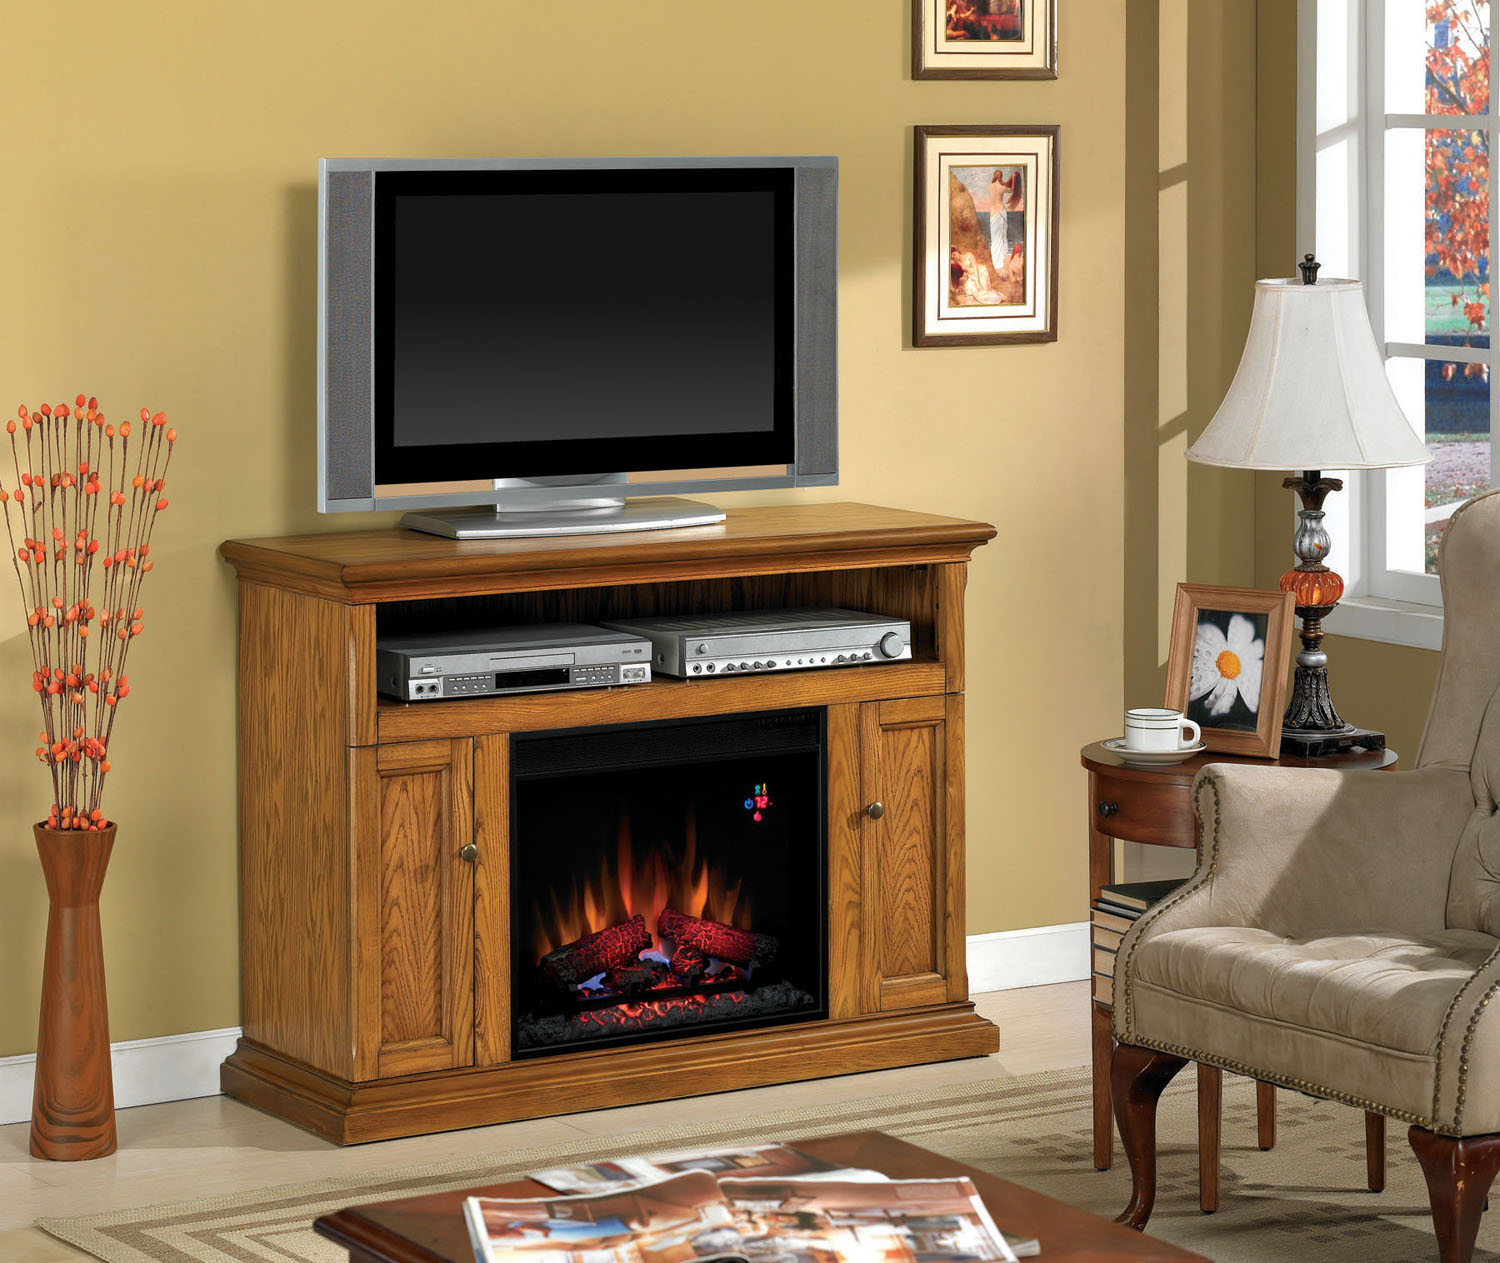 Classicflame Cannes Electric Fireplace Twin Star Home Gallery